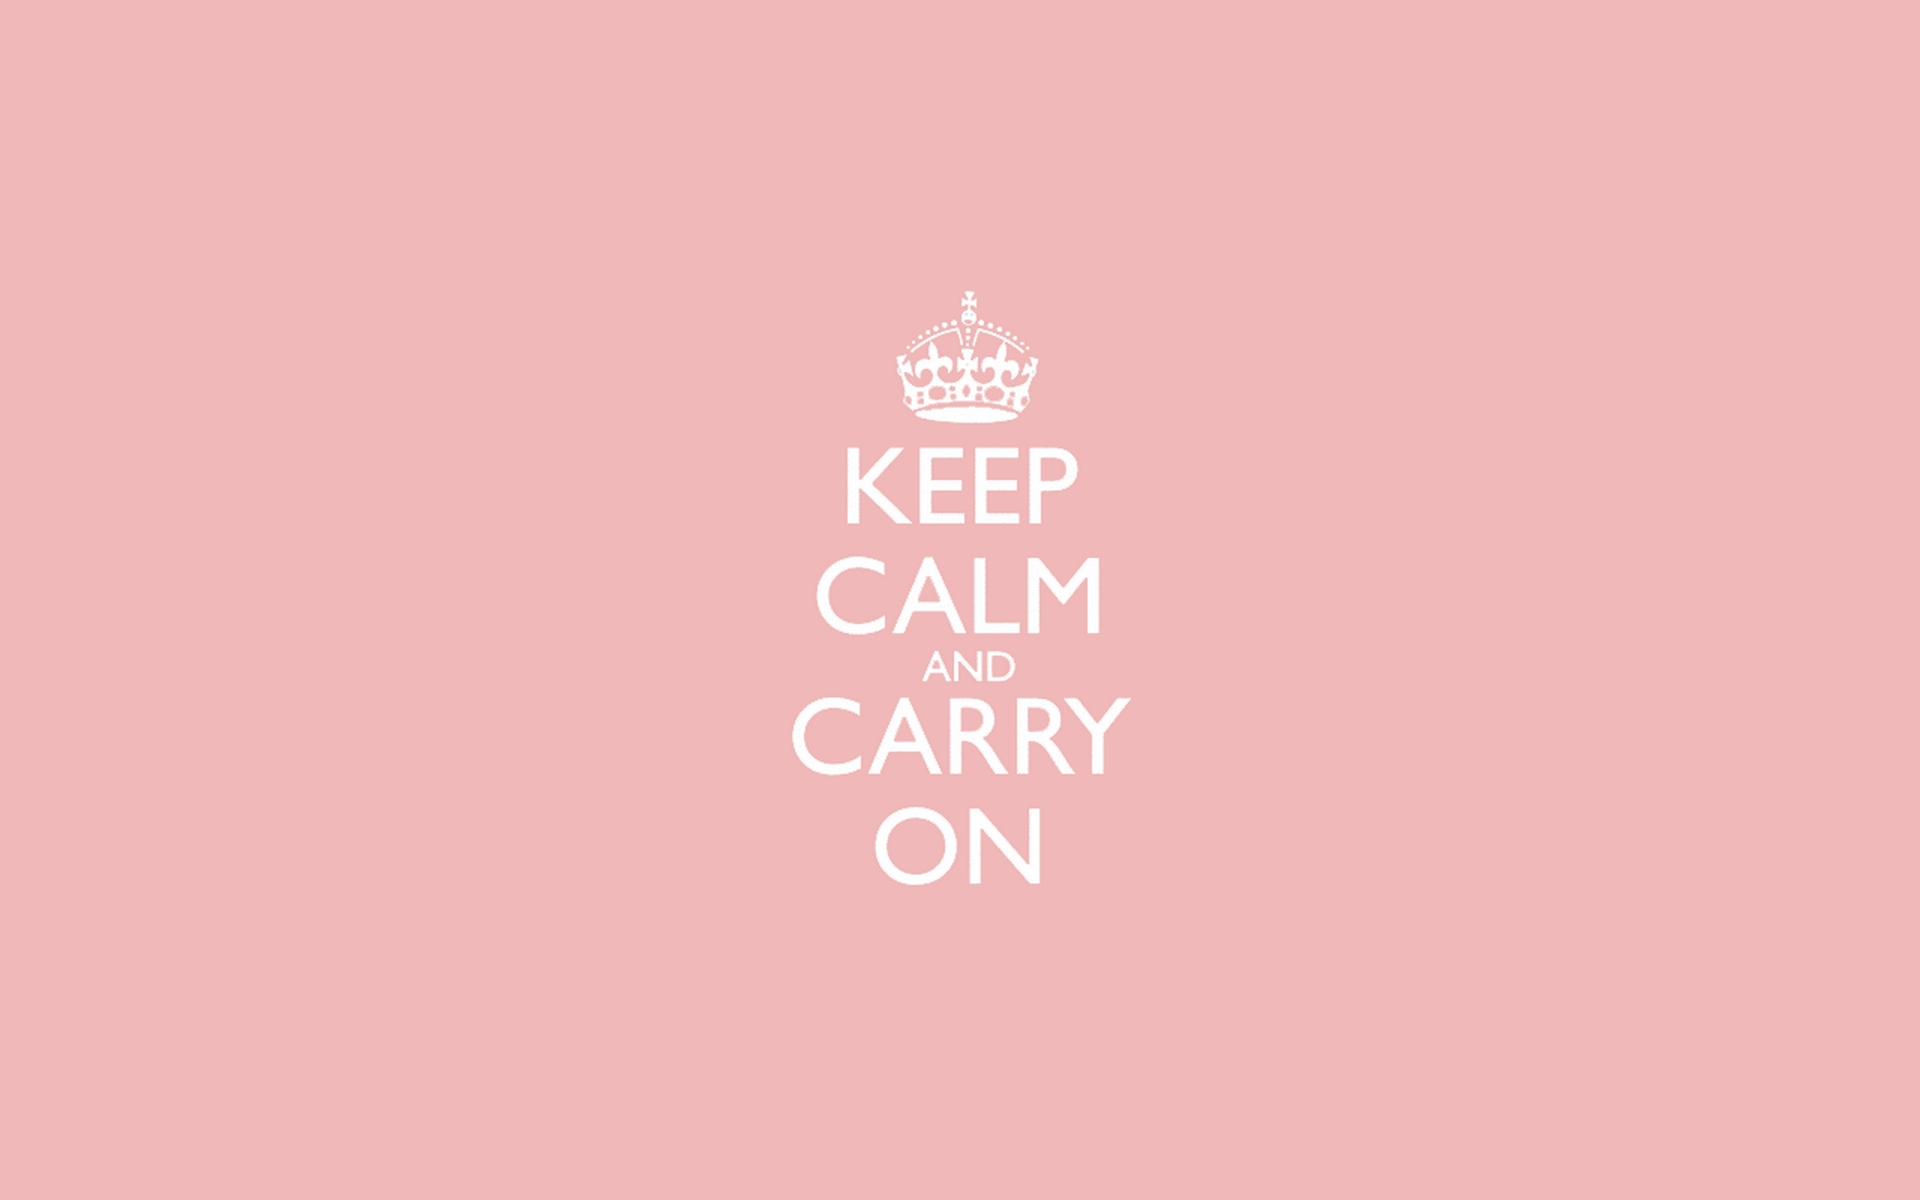 Pineapple Cute Wallpaper 9 Hd Keep Calm And Carry On Wallpapers